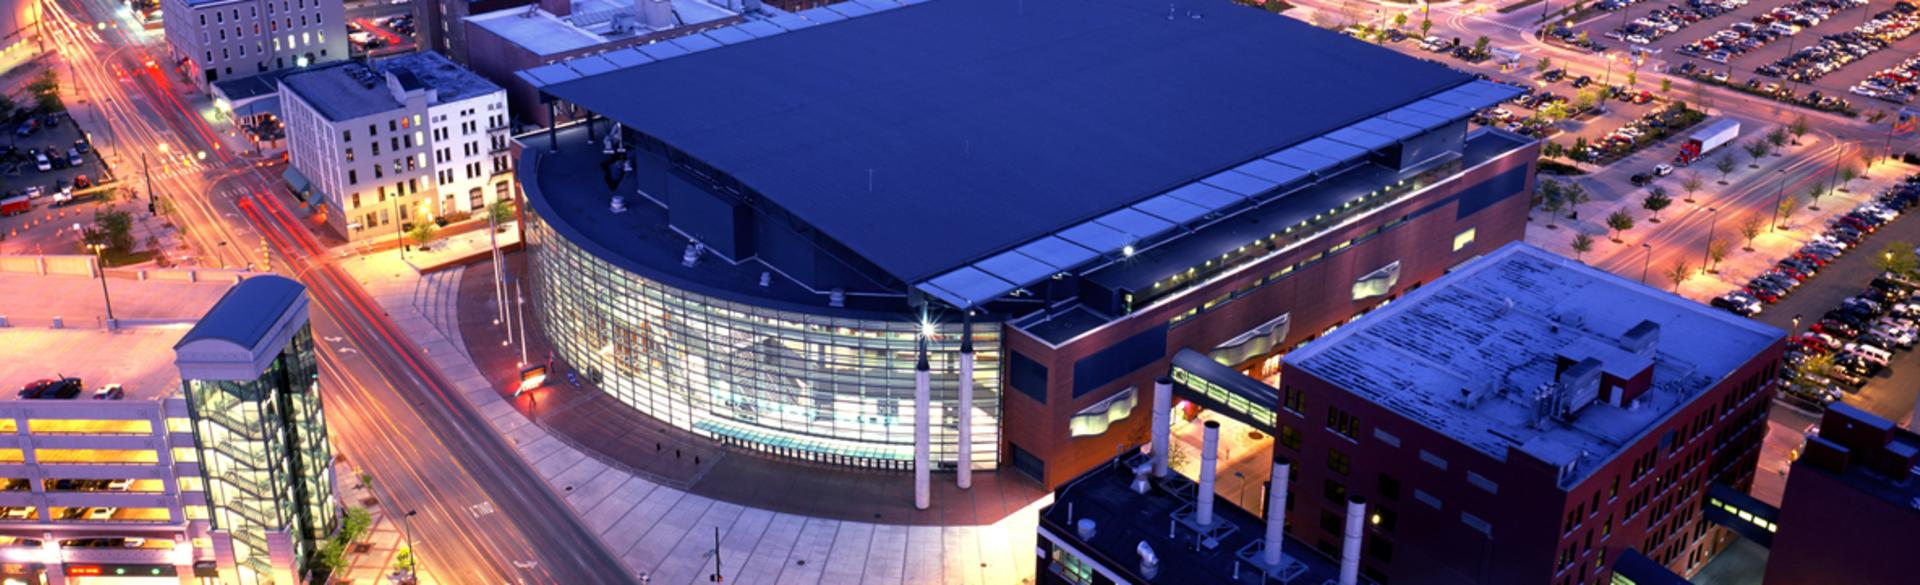 Van Andel Arena at night